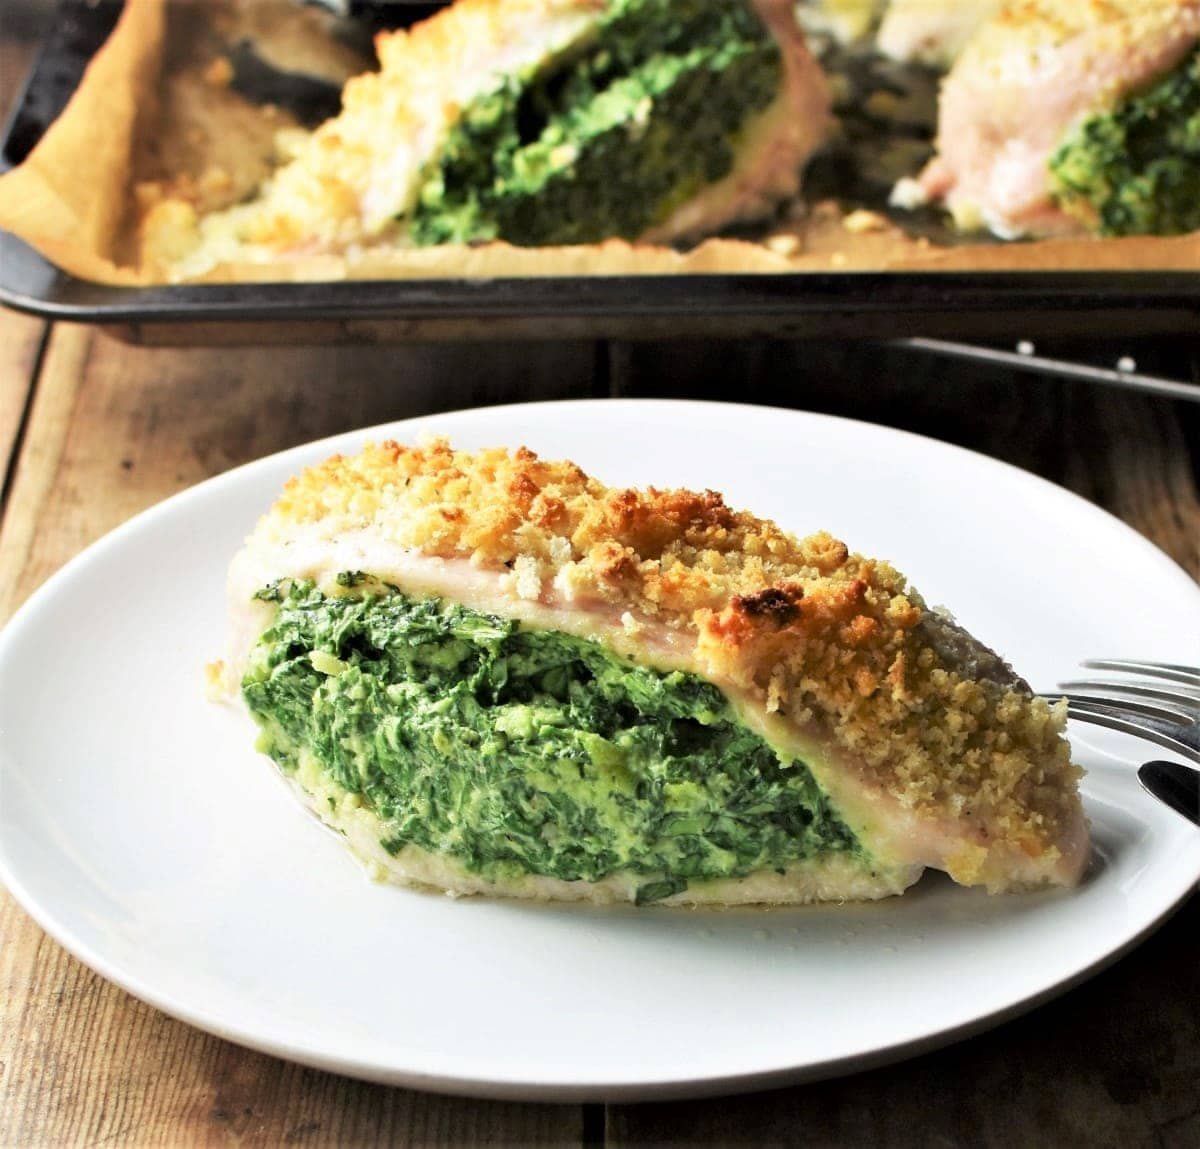 Spinach And Ricotta Cheese Stuffed Chicken Everyday Healthy Recipes